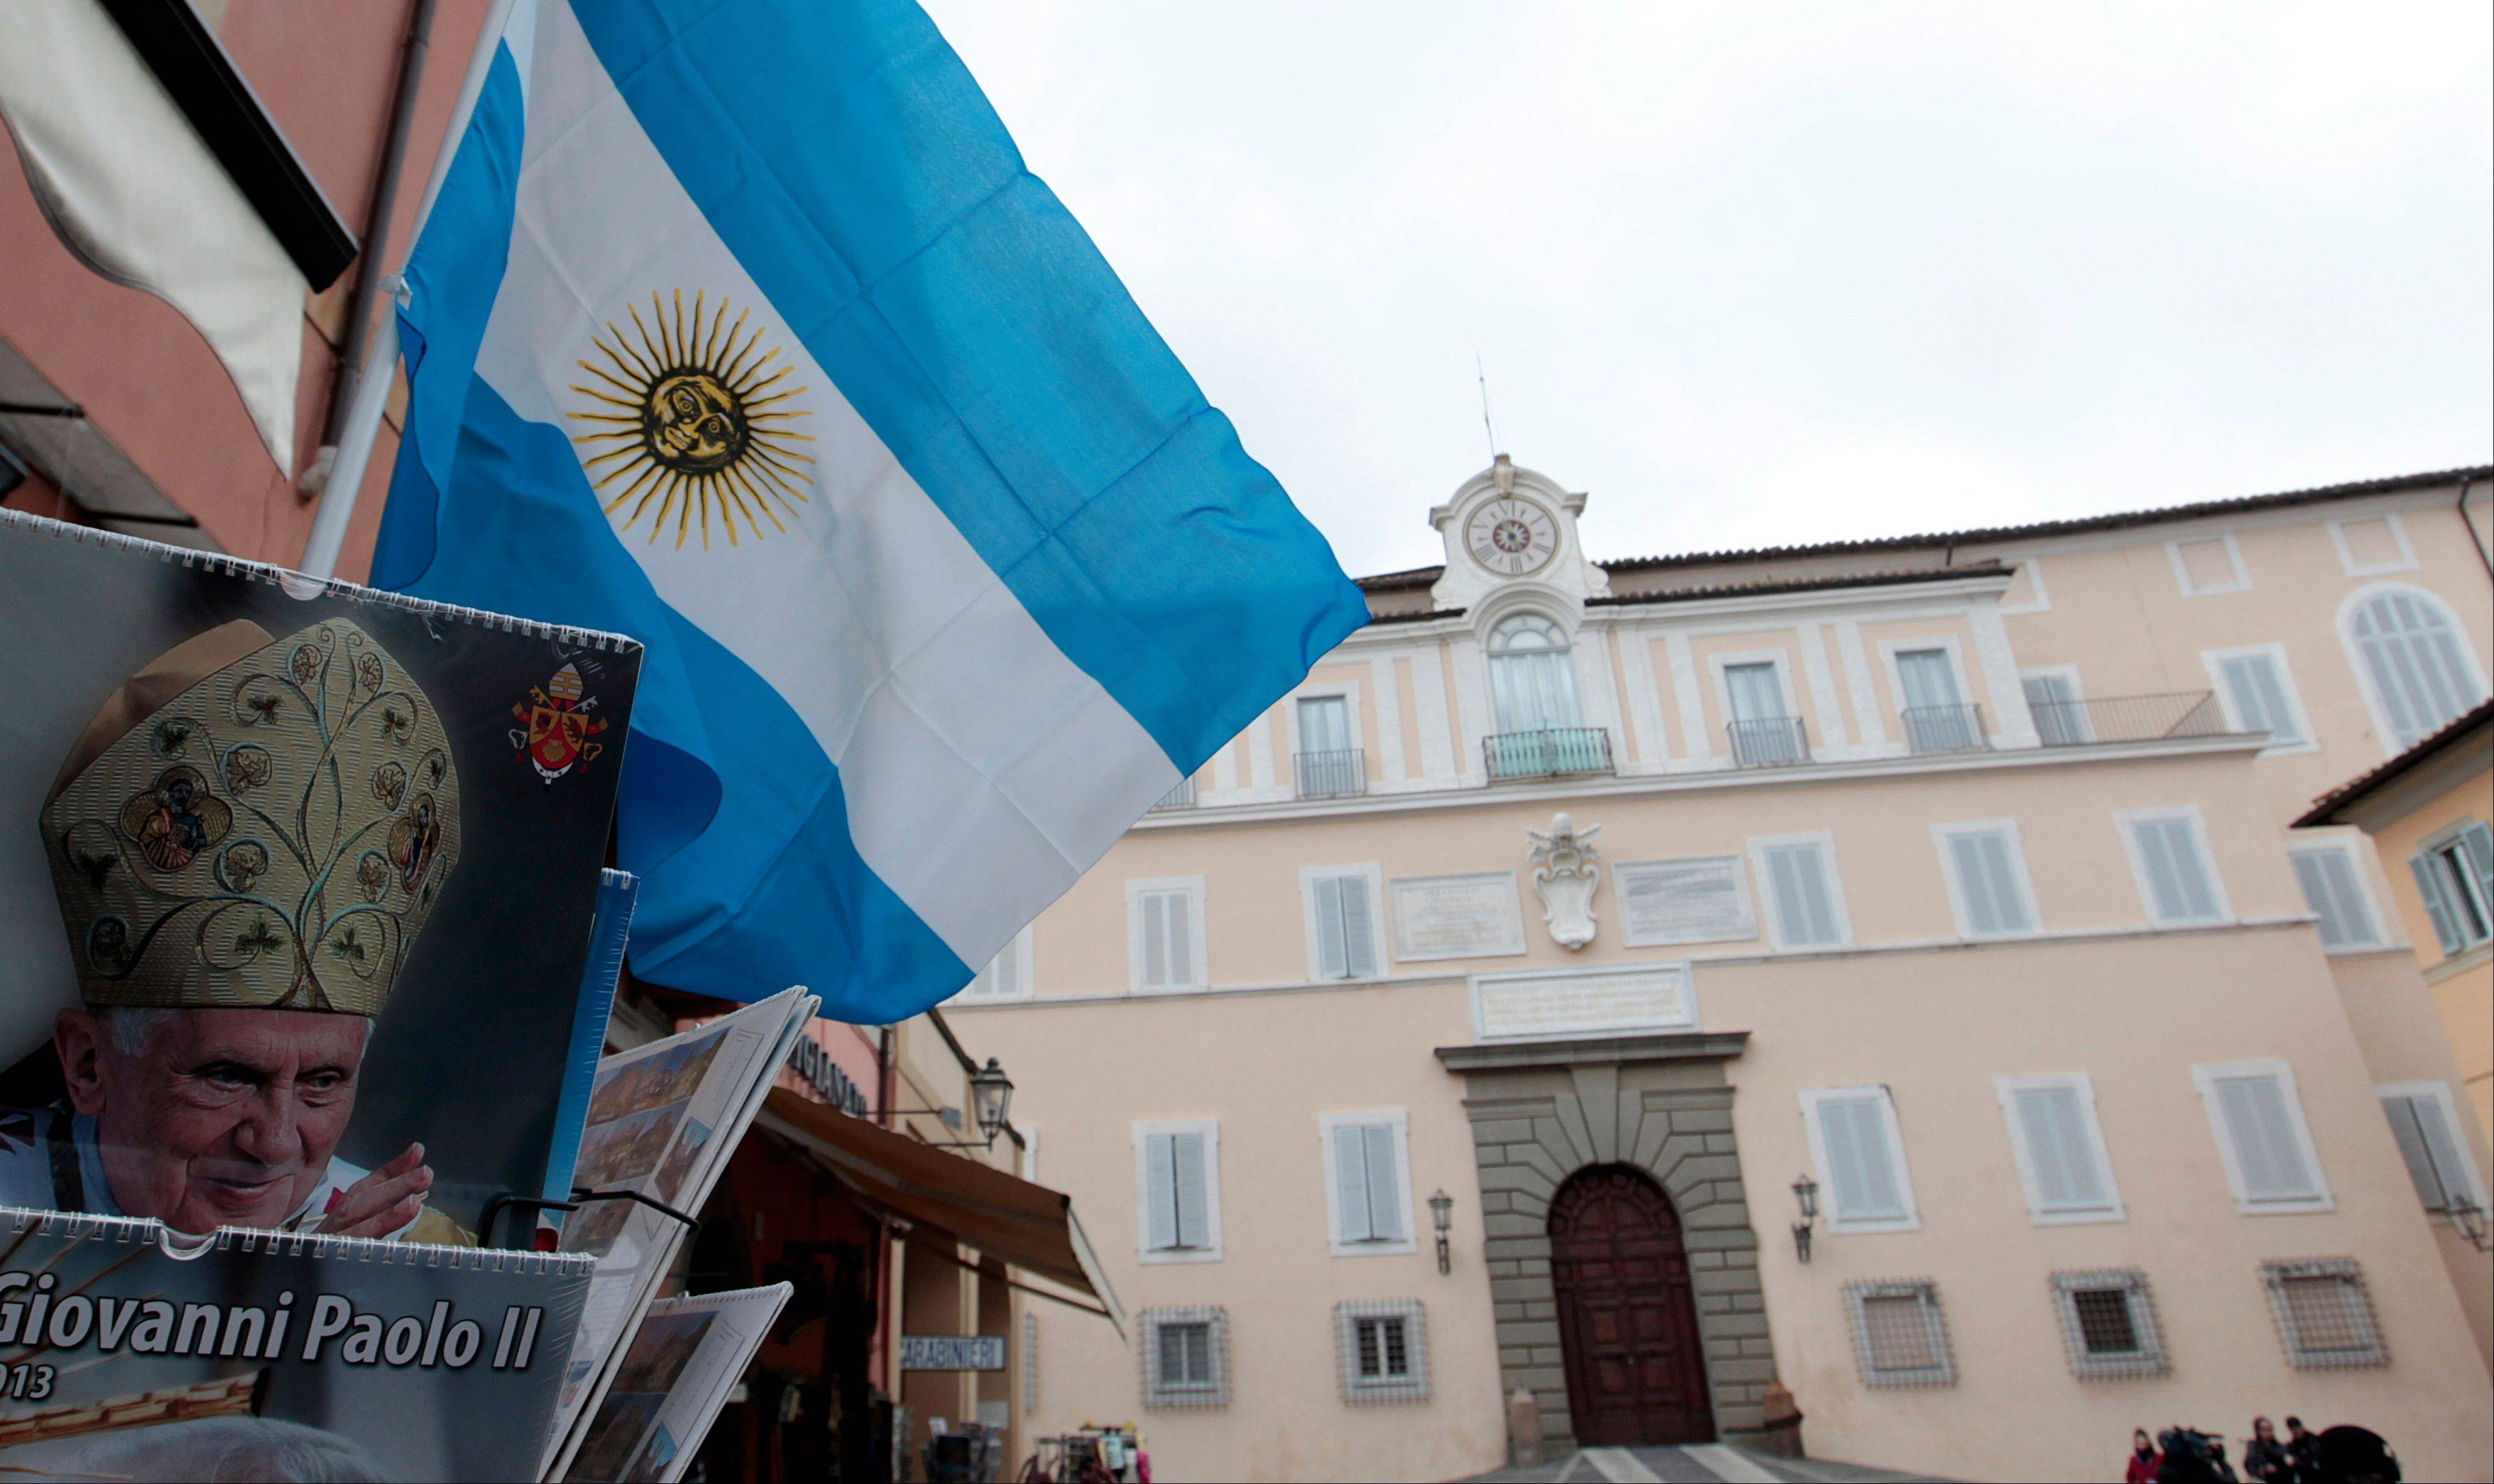 An Argentine flag waves from a stand displaying calendars of former Pope Benedict XVI outside the papal summer residence of Castel Gandolfo, Thursday, March 14, 2013.